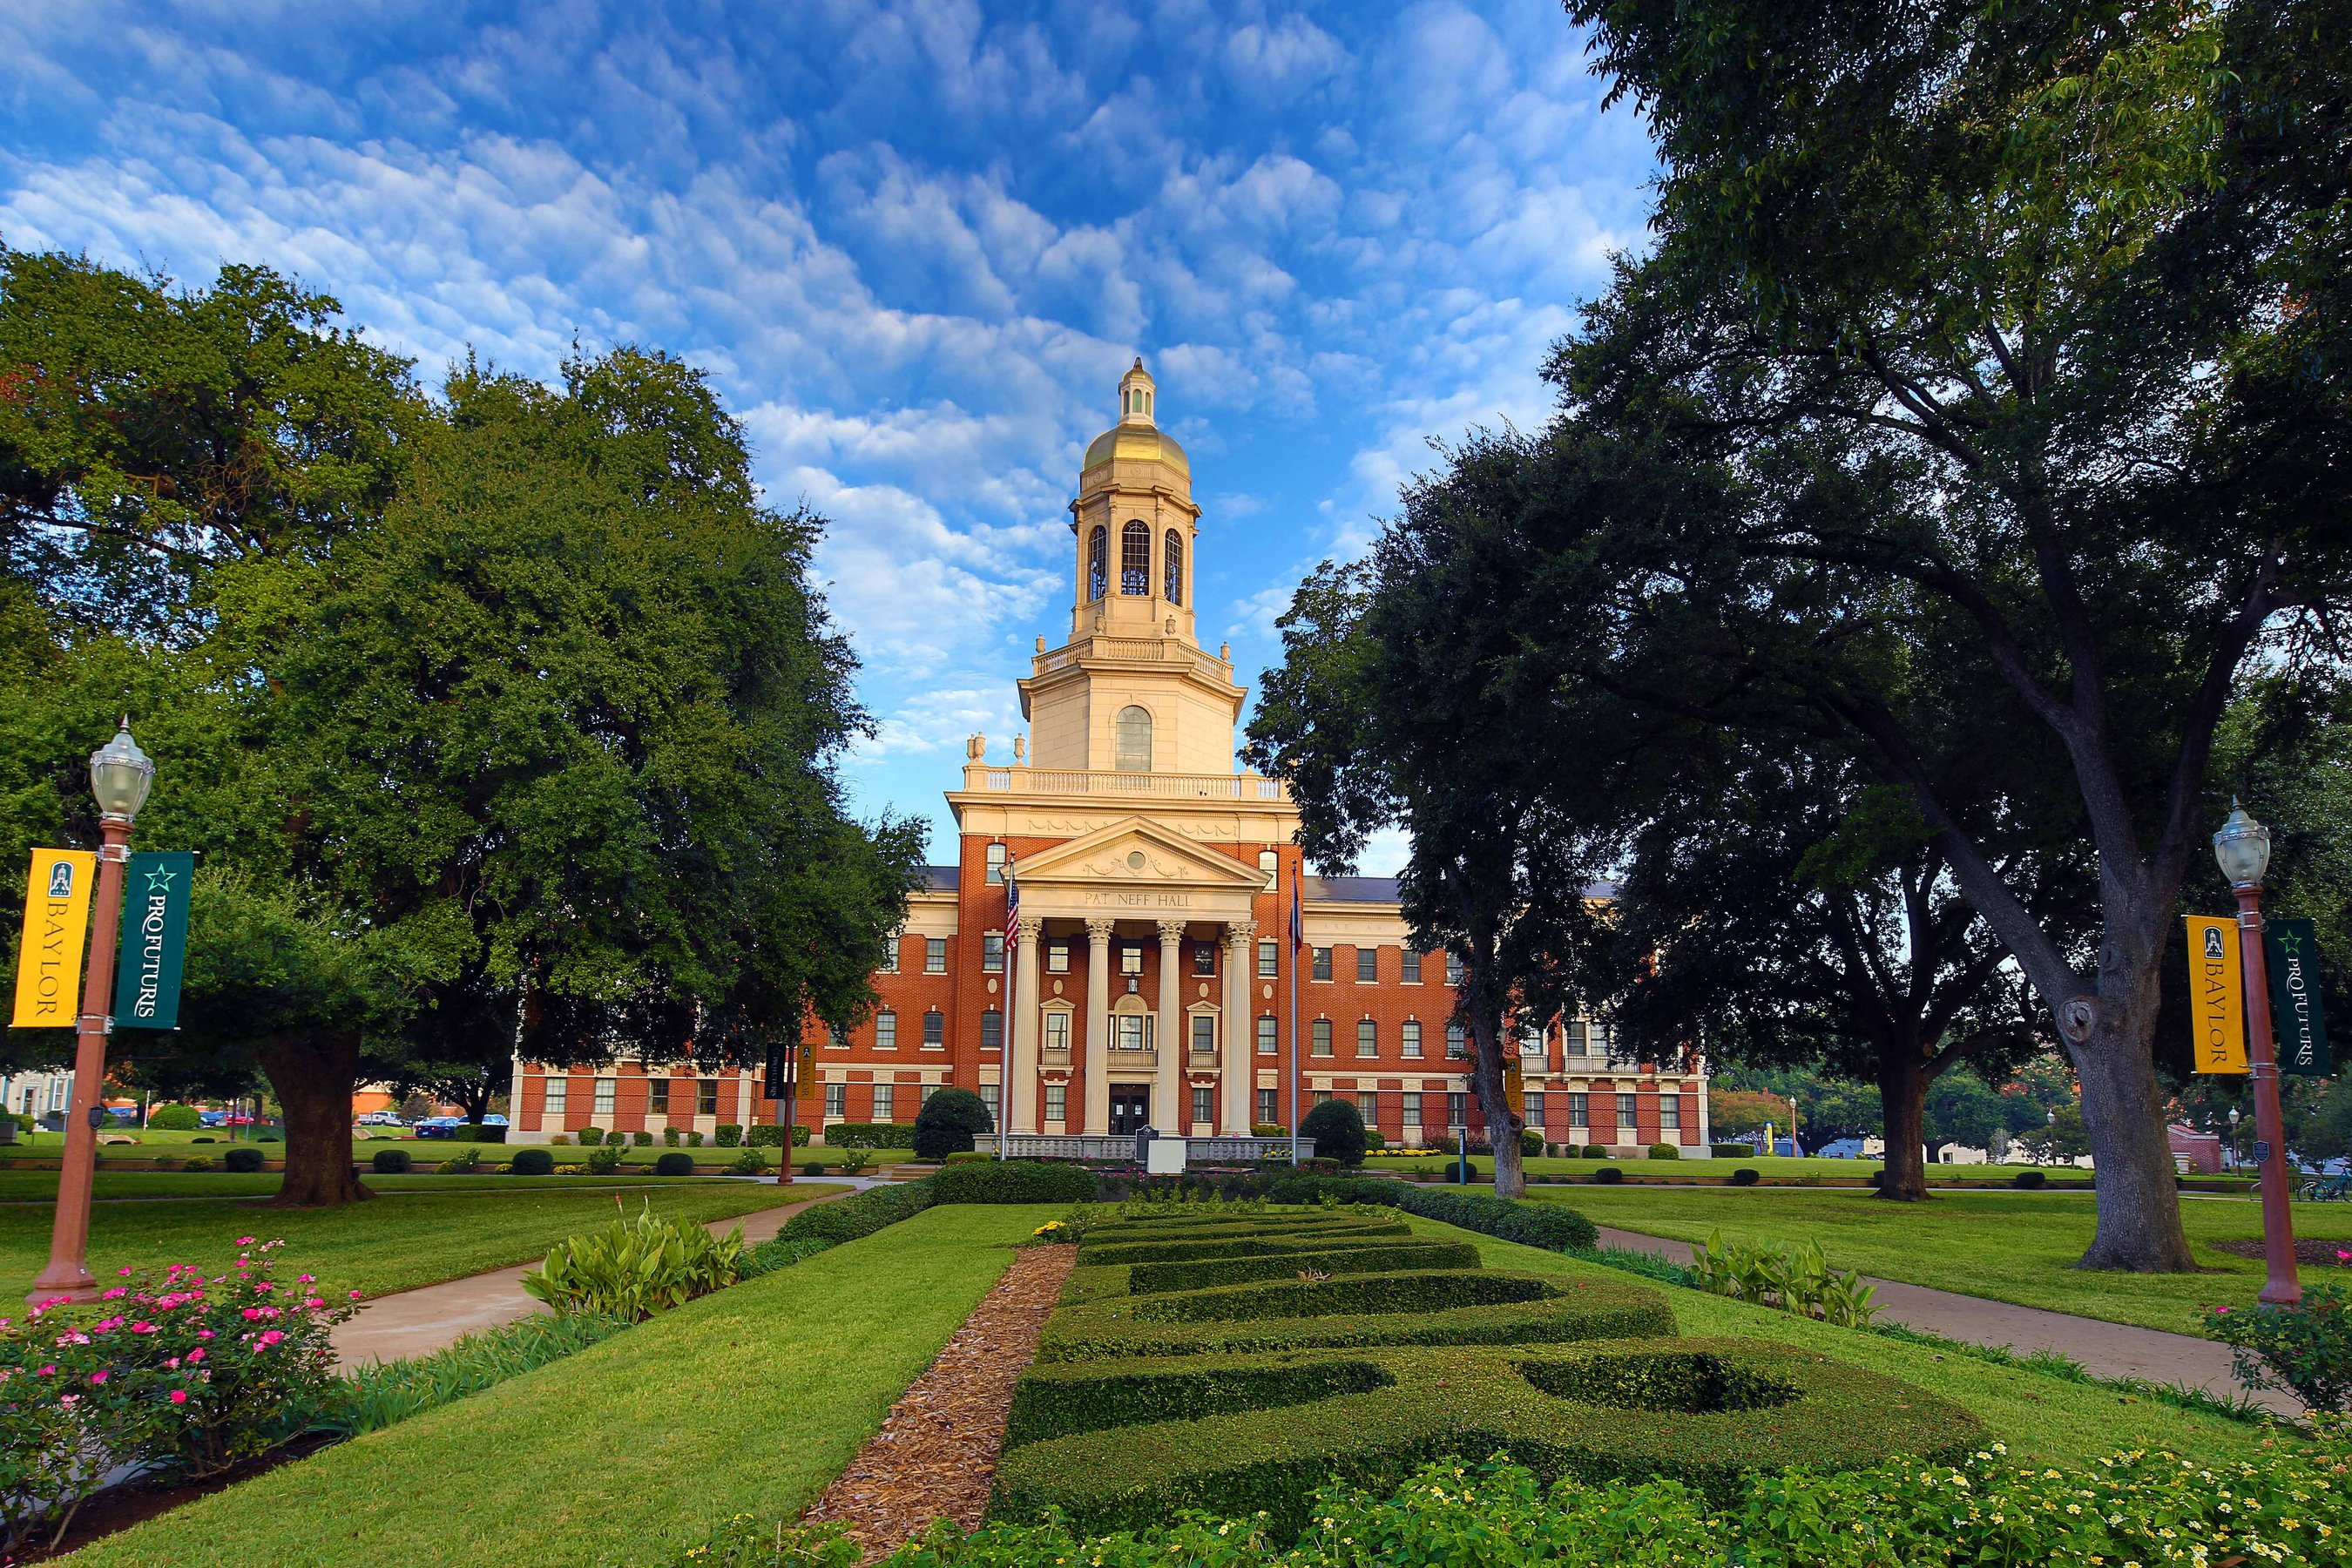 A view of Baylor University's Founders Mall in front of Pat Neff Hall